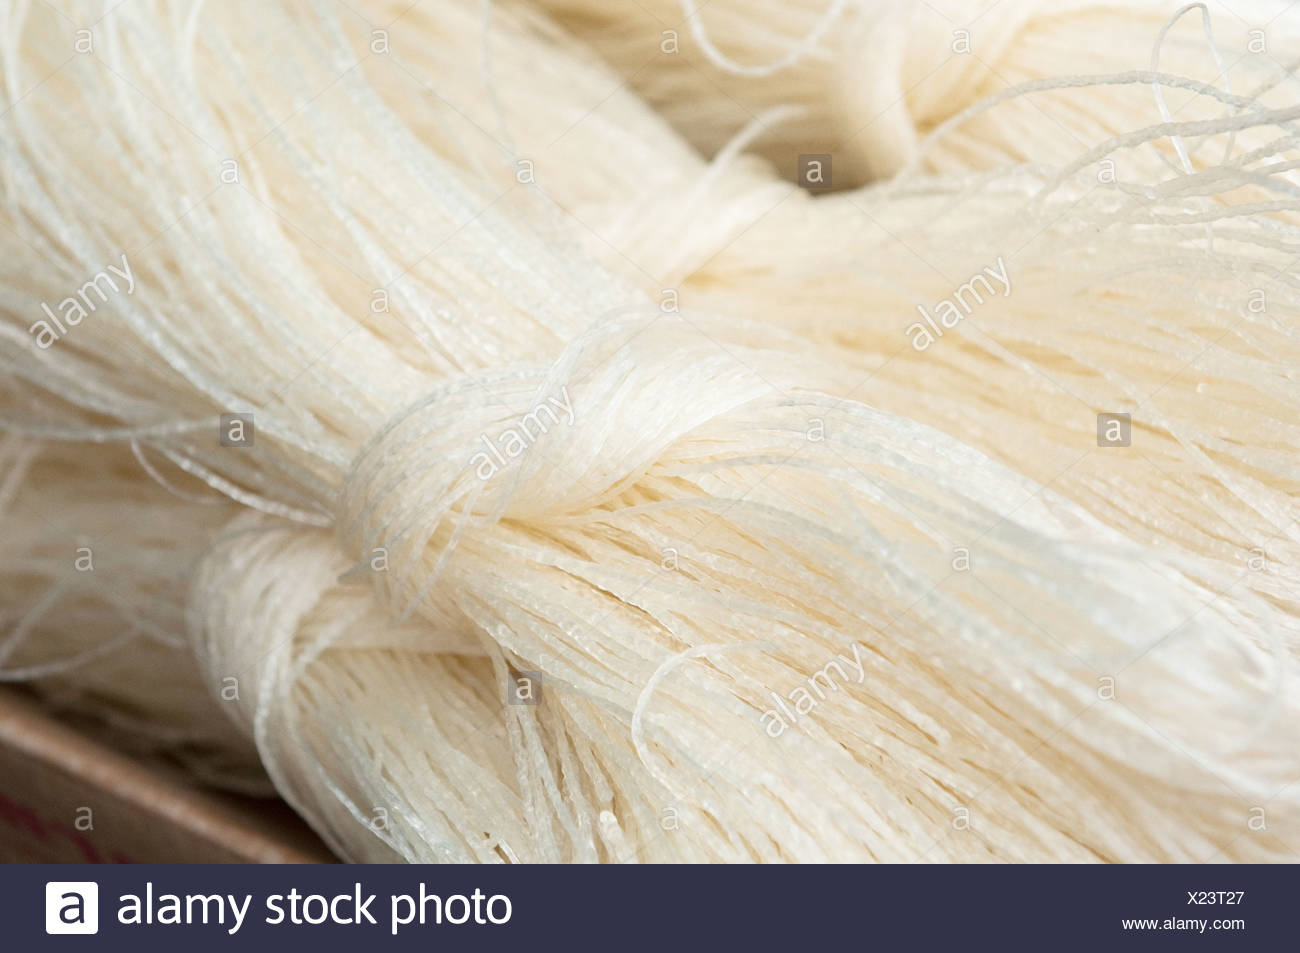 chinese rice noodles - Stock Image